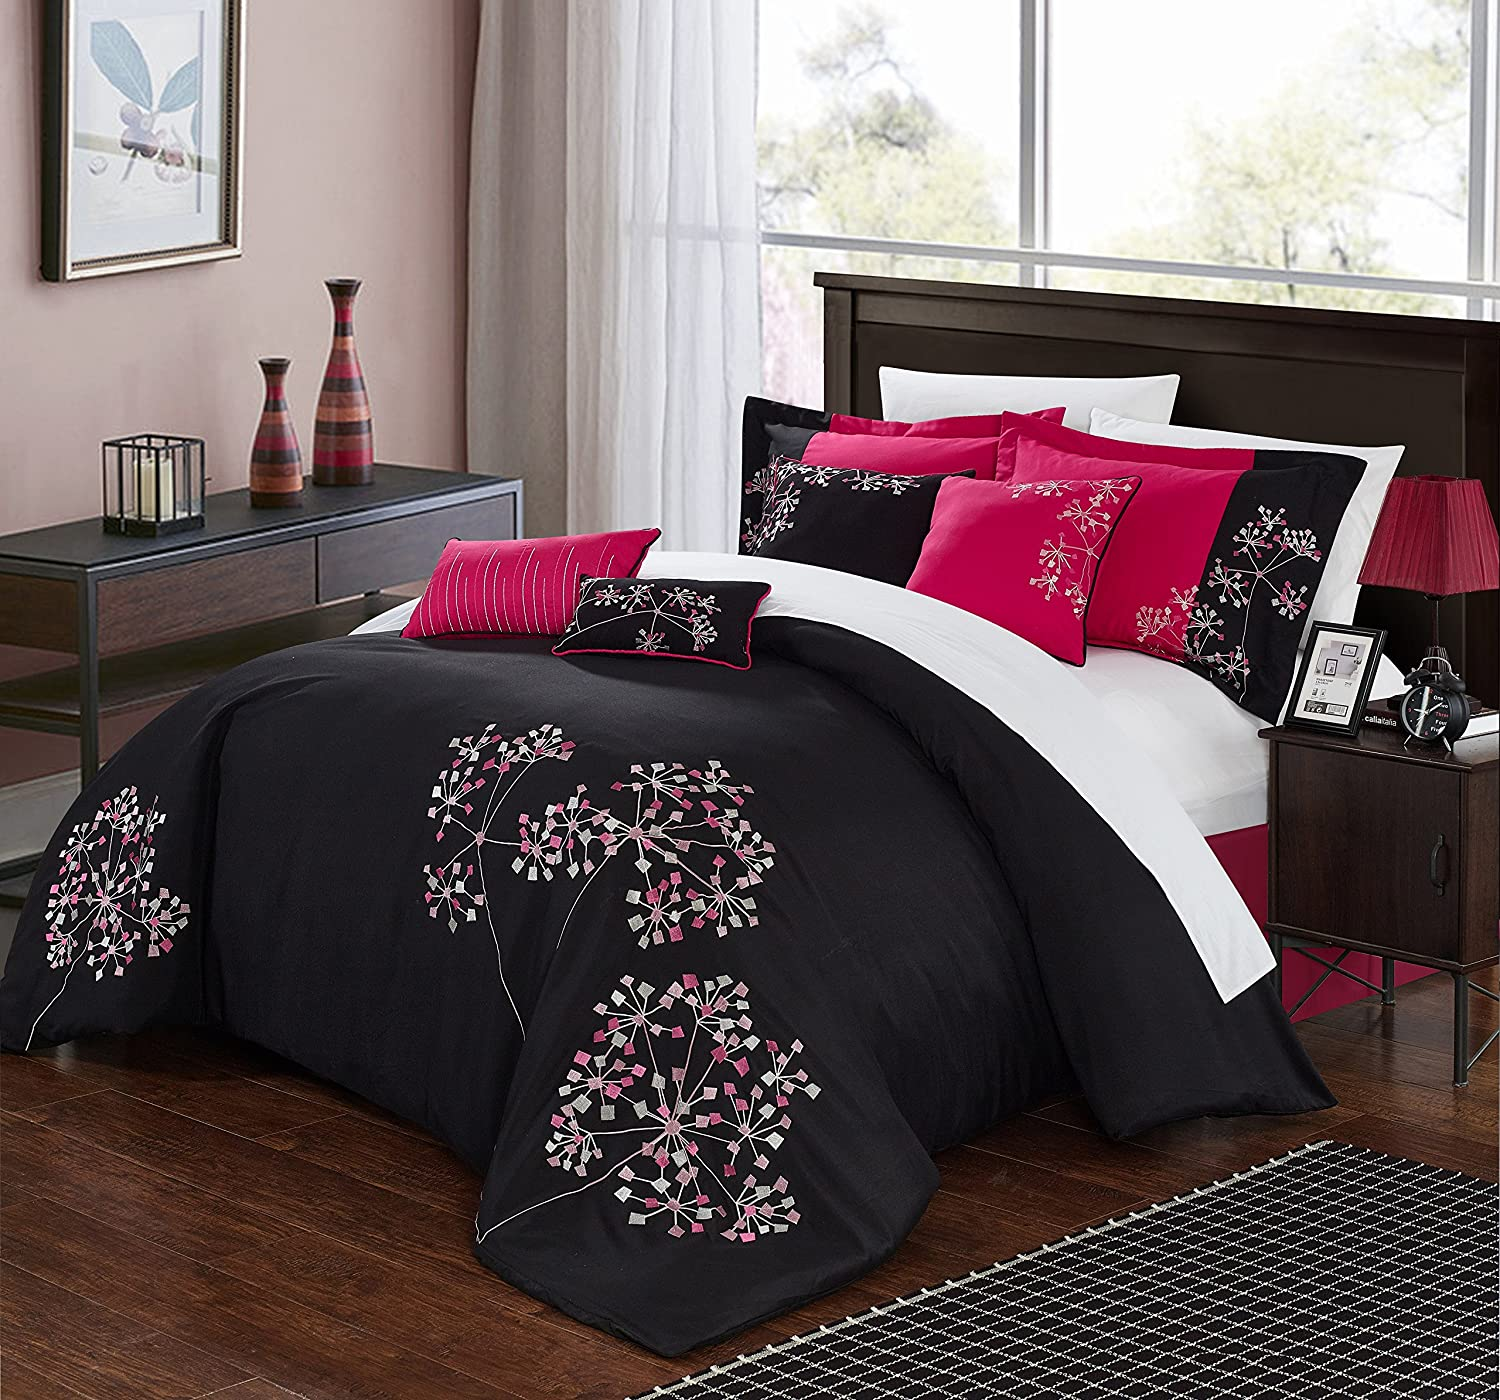 Pink Floral 8 Piece Comforter Set Color: Black, Size: King